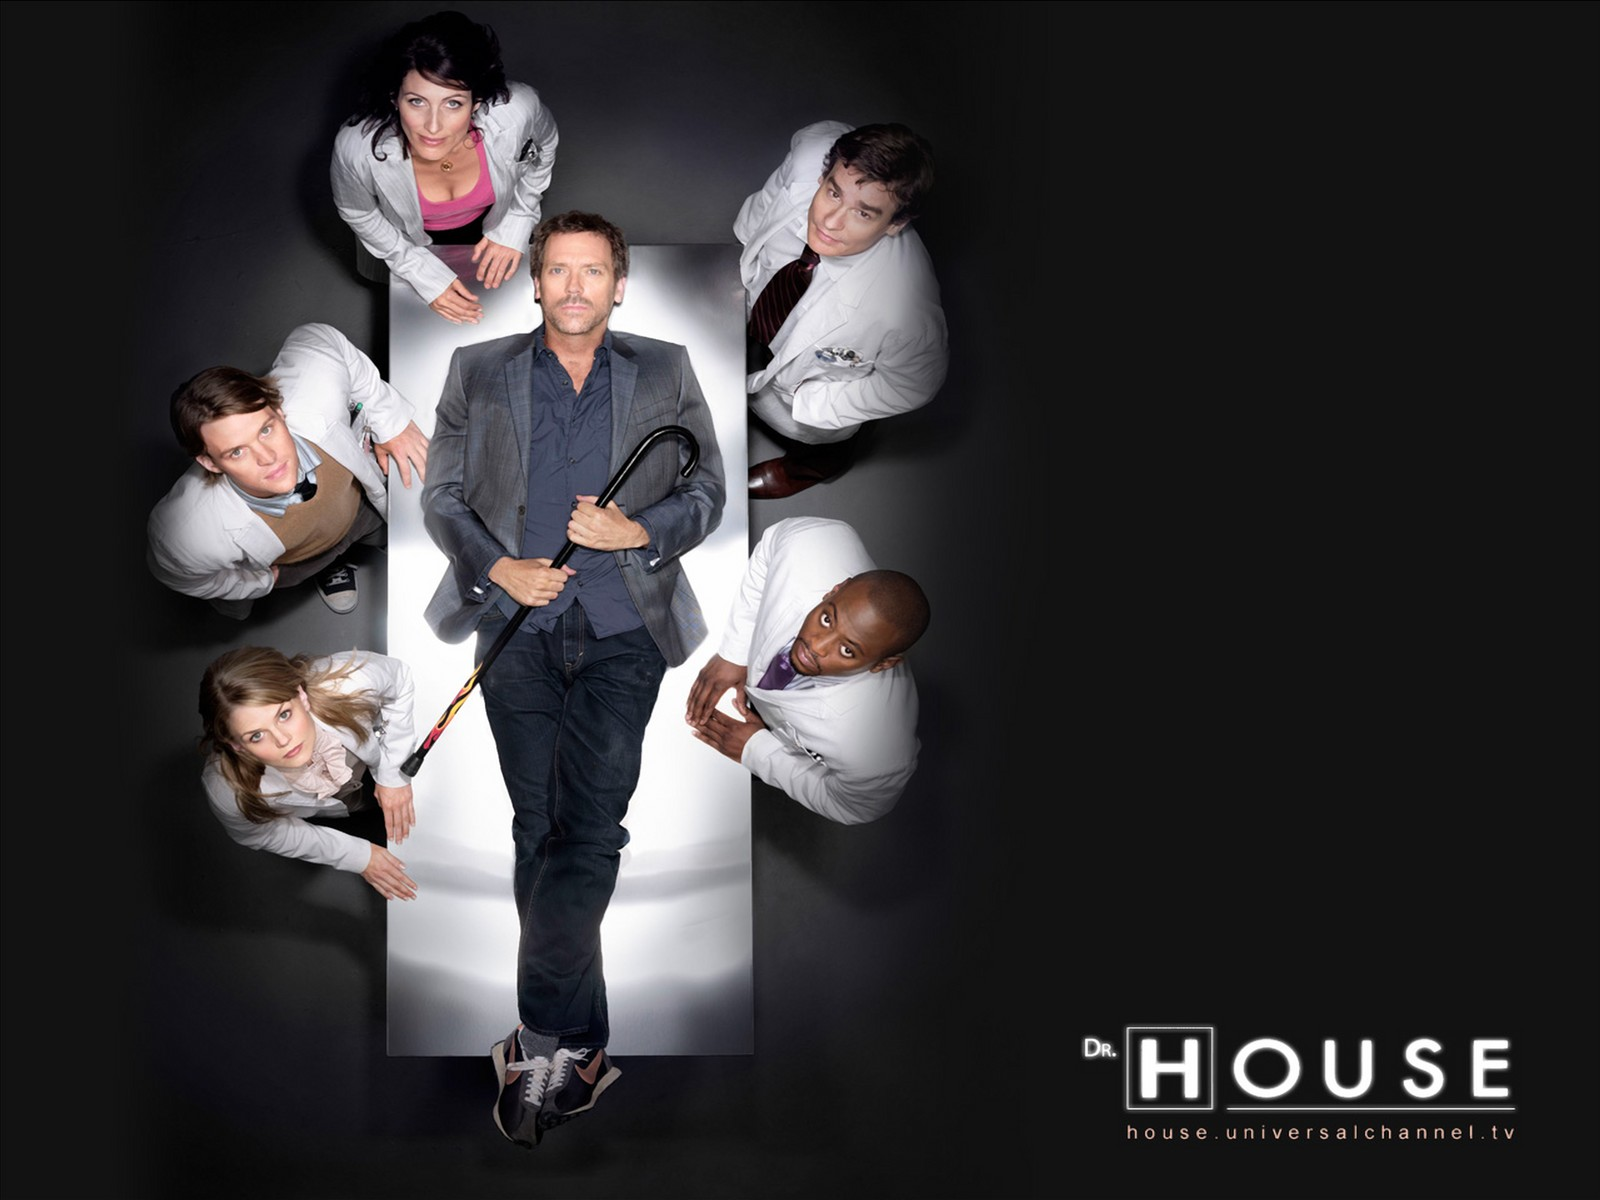 Wallpapers de dr house full hd taringa for Full hd house image